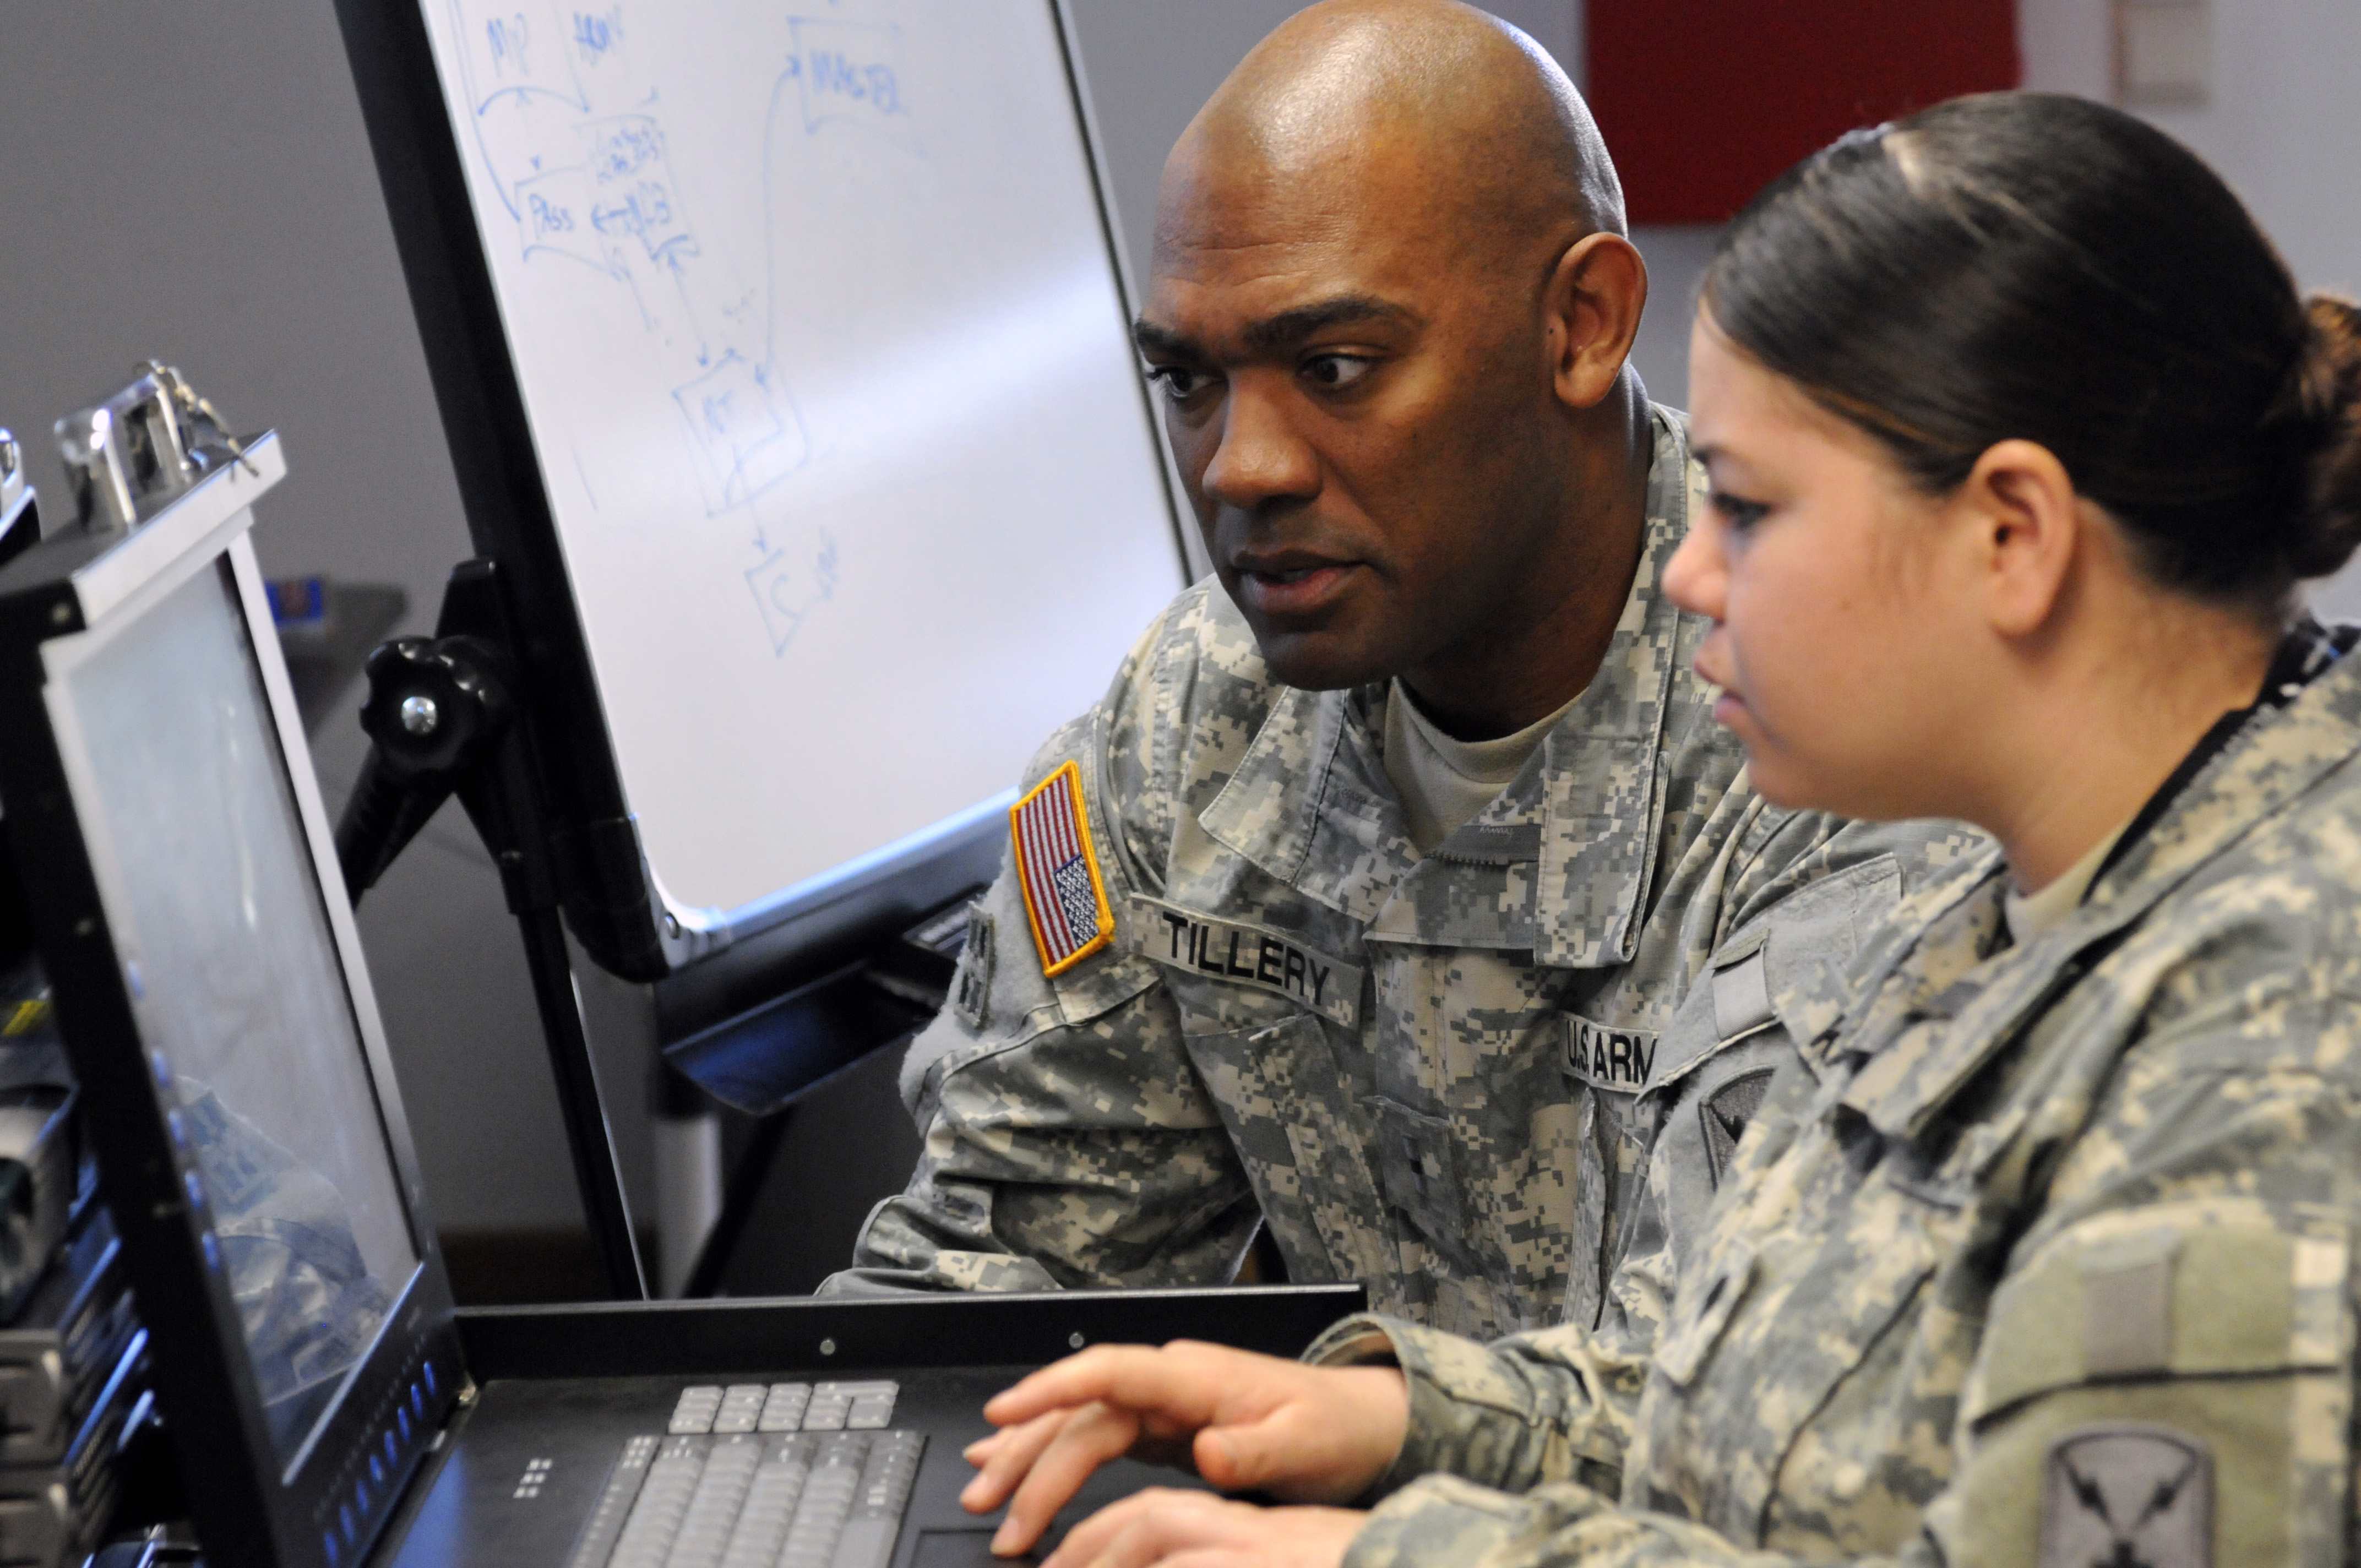 New research and investments are spearheading how the Army is using AI for cybersecurity. (ARMY)